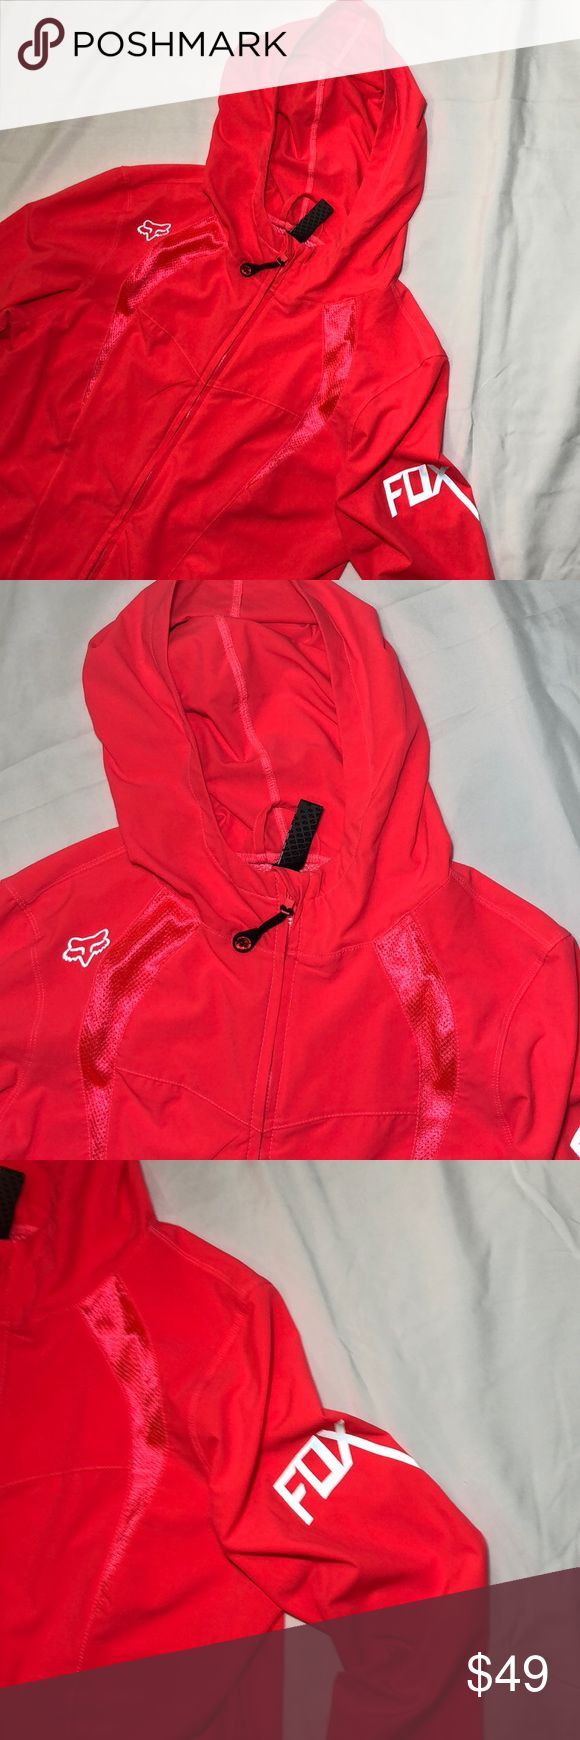 Fox Racing Womens Active Lightweight Jacket Medium This is a barely worn Fox Racing Womens Active Lightweight Jacket Medium. Only used a handul of times, in excellent condition.  Size is medium. Color bright pink/salmon. Fox Jackets & Coats Utility Jackets